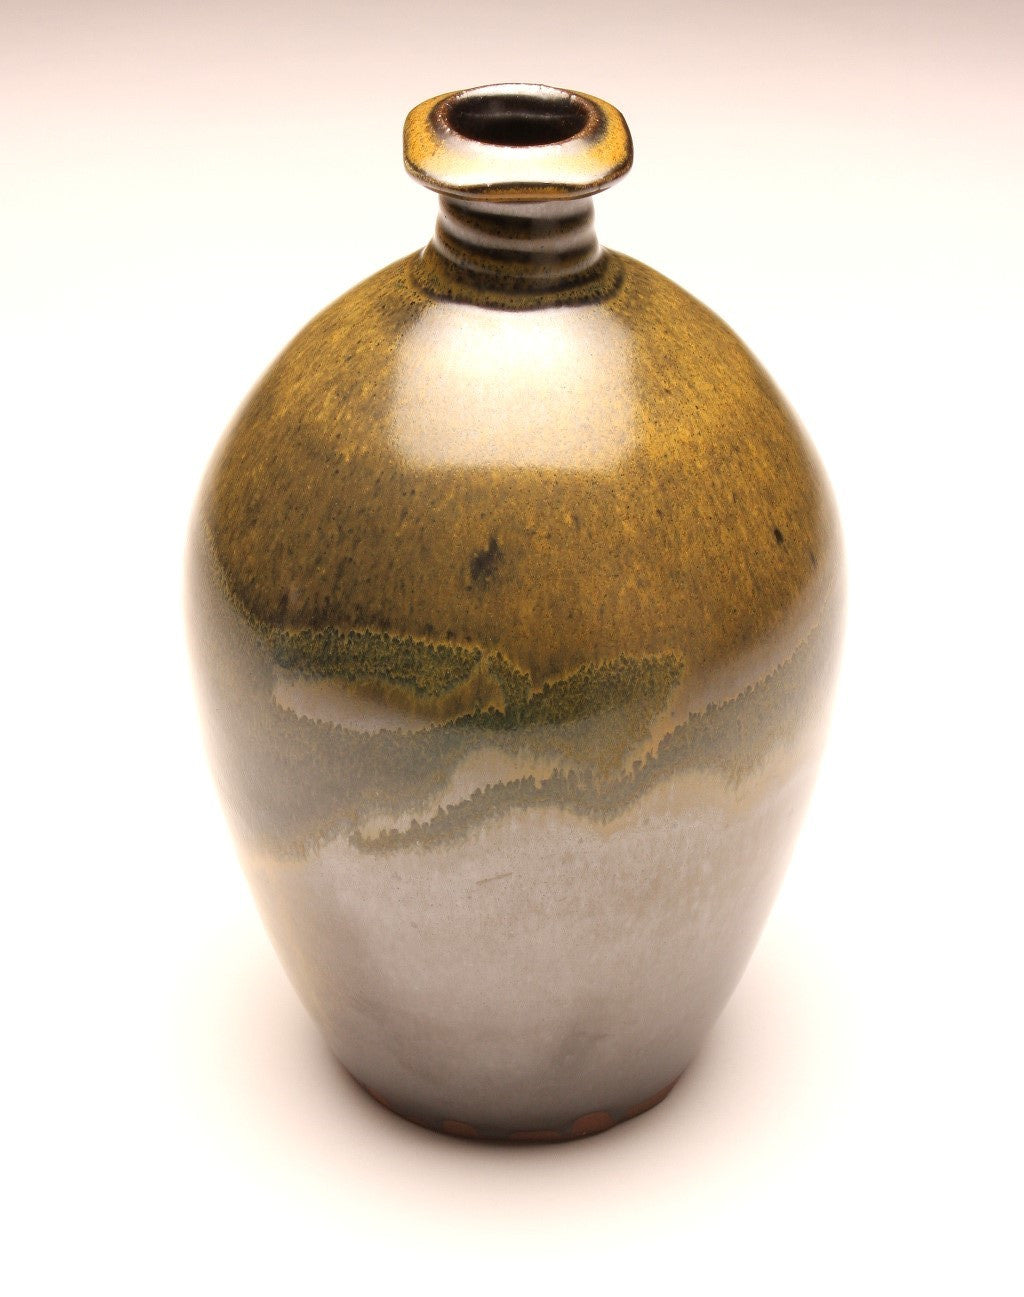 GH009 Bottle with Square Top